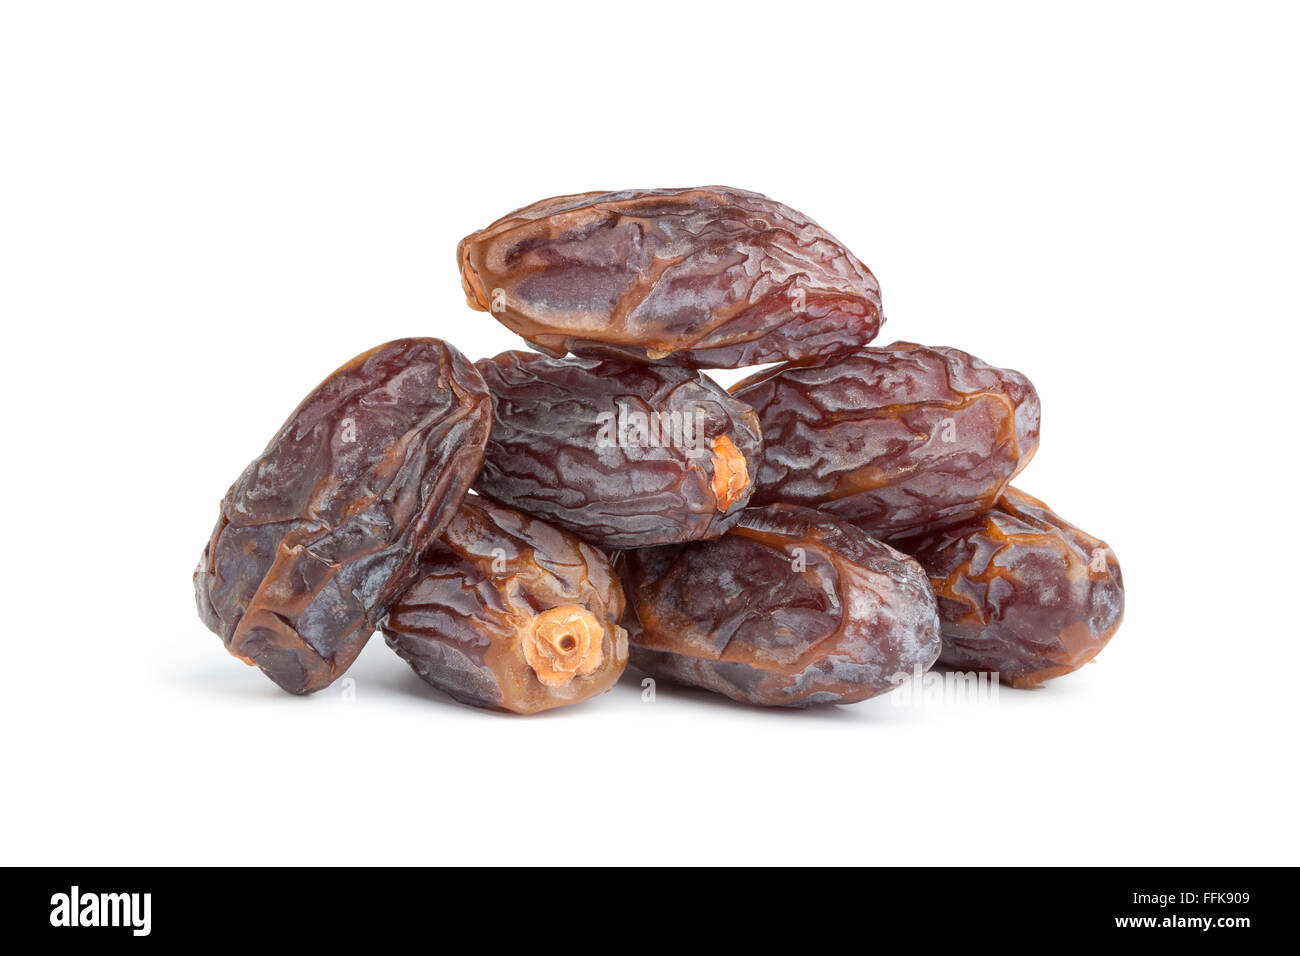 Heap of whole dried dates on white background - Stock Image